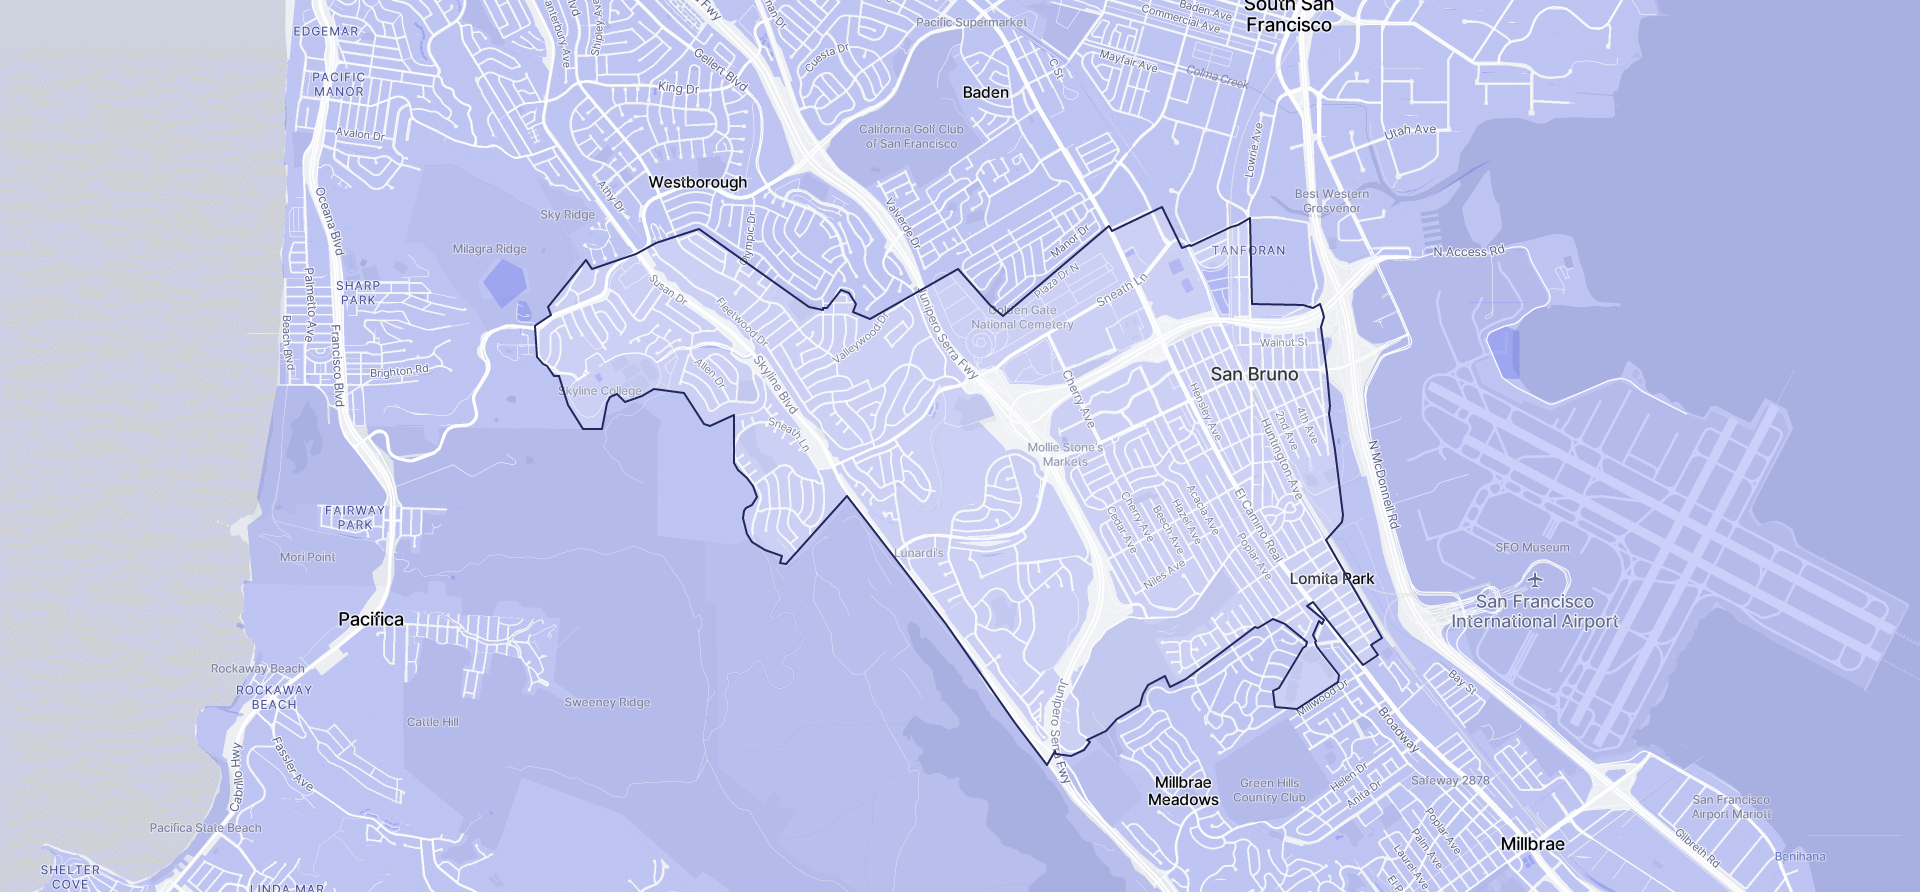 Image of San Bruno boundaries on a map.